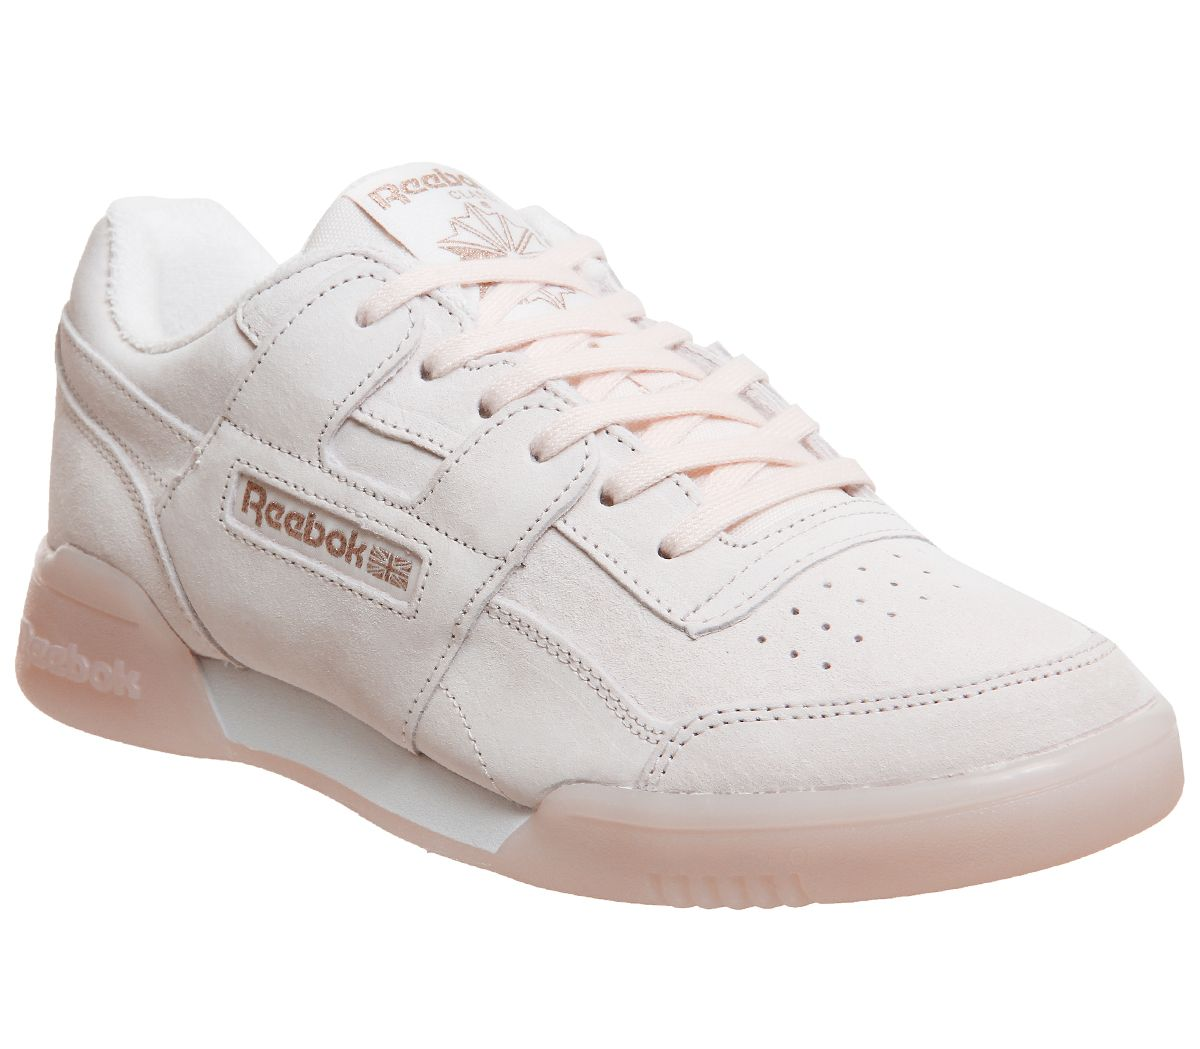 d317e629dd85 Reebok Workout Plus Trainers Pale Pink Rose Gold Exclusive - Hers ...